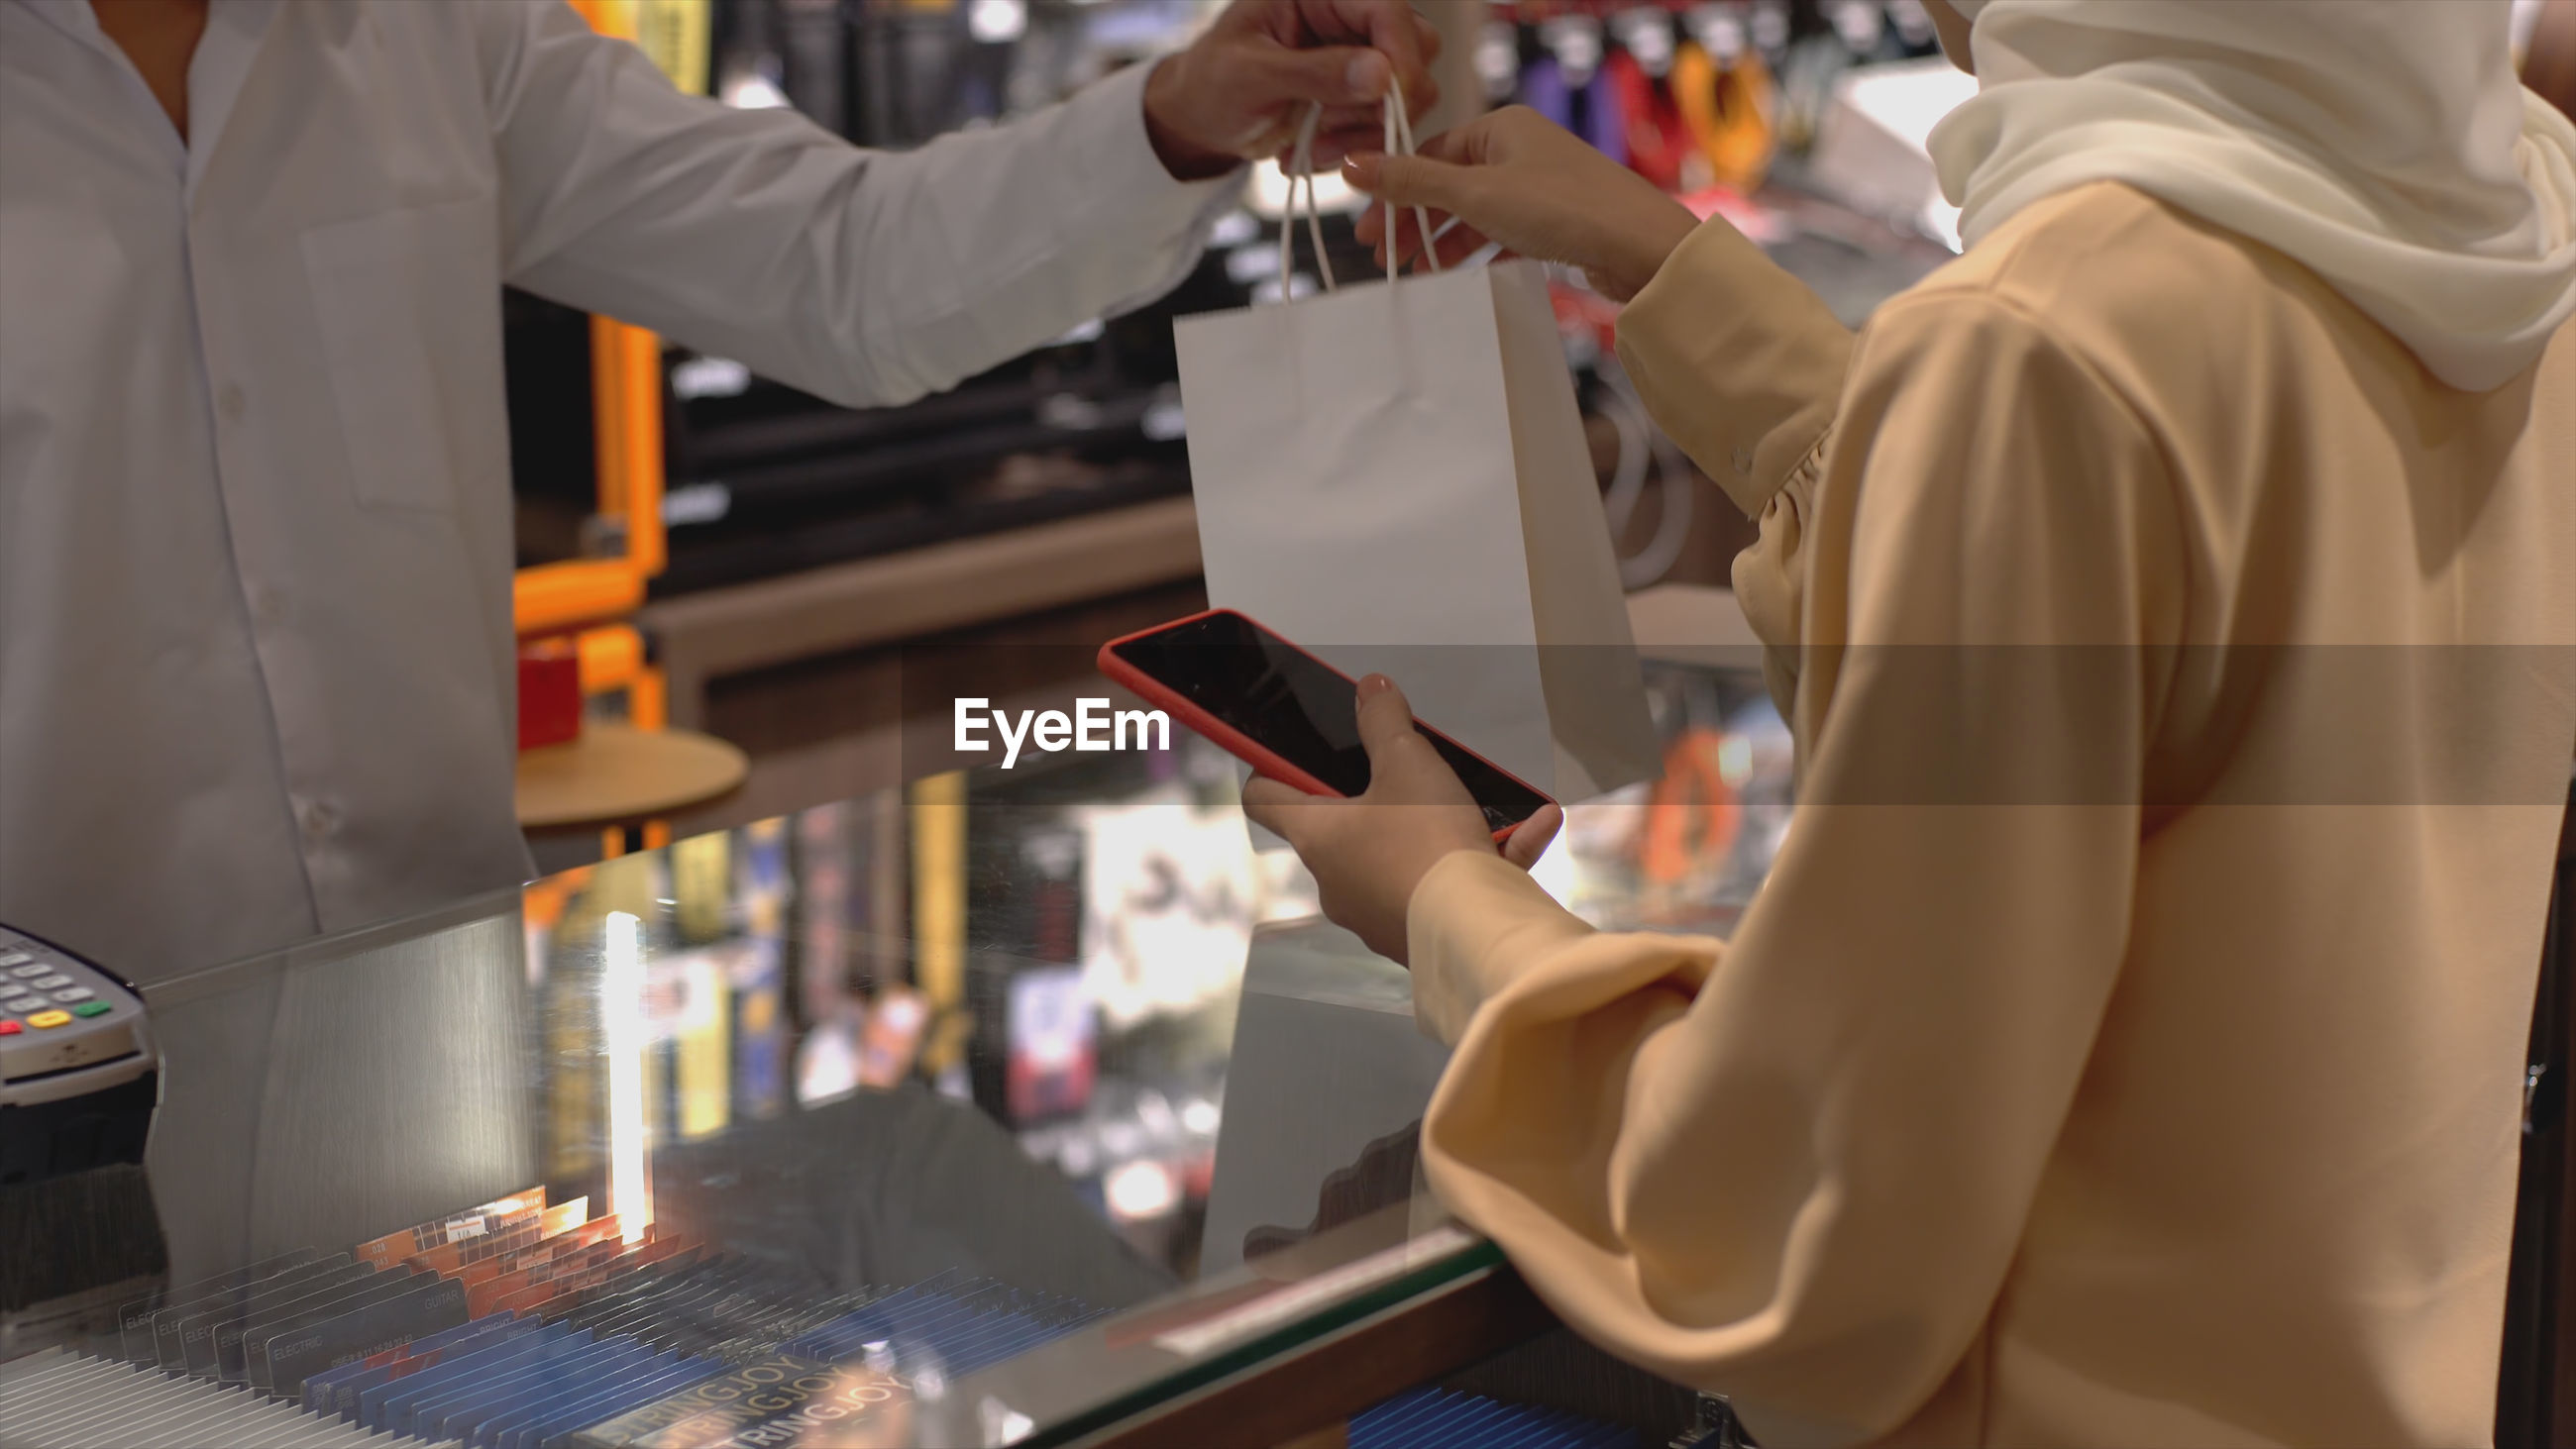 An upwardly mobile asian muslim woman using a mobile phone - smartwatch to pay for a product